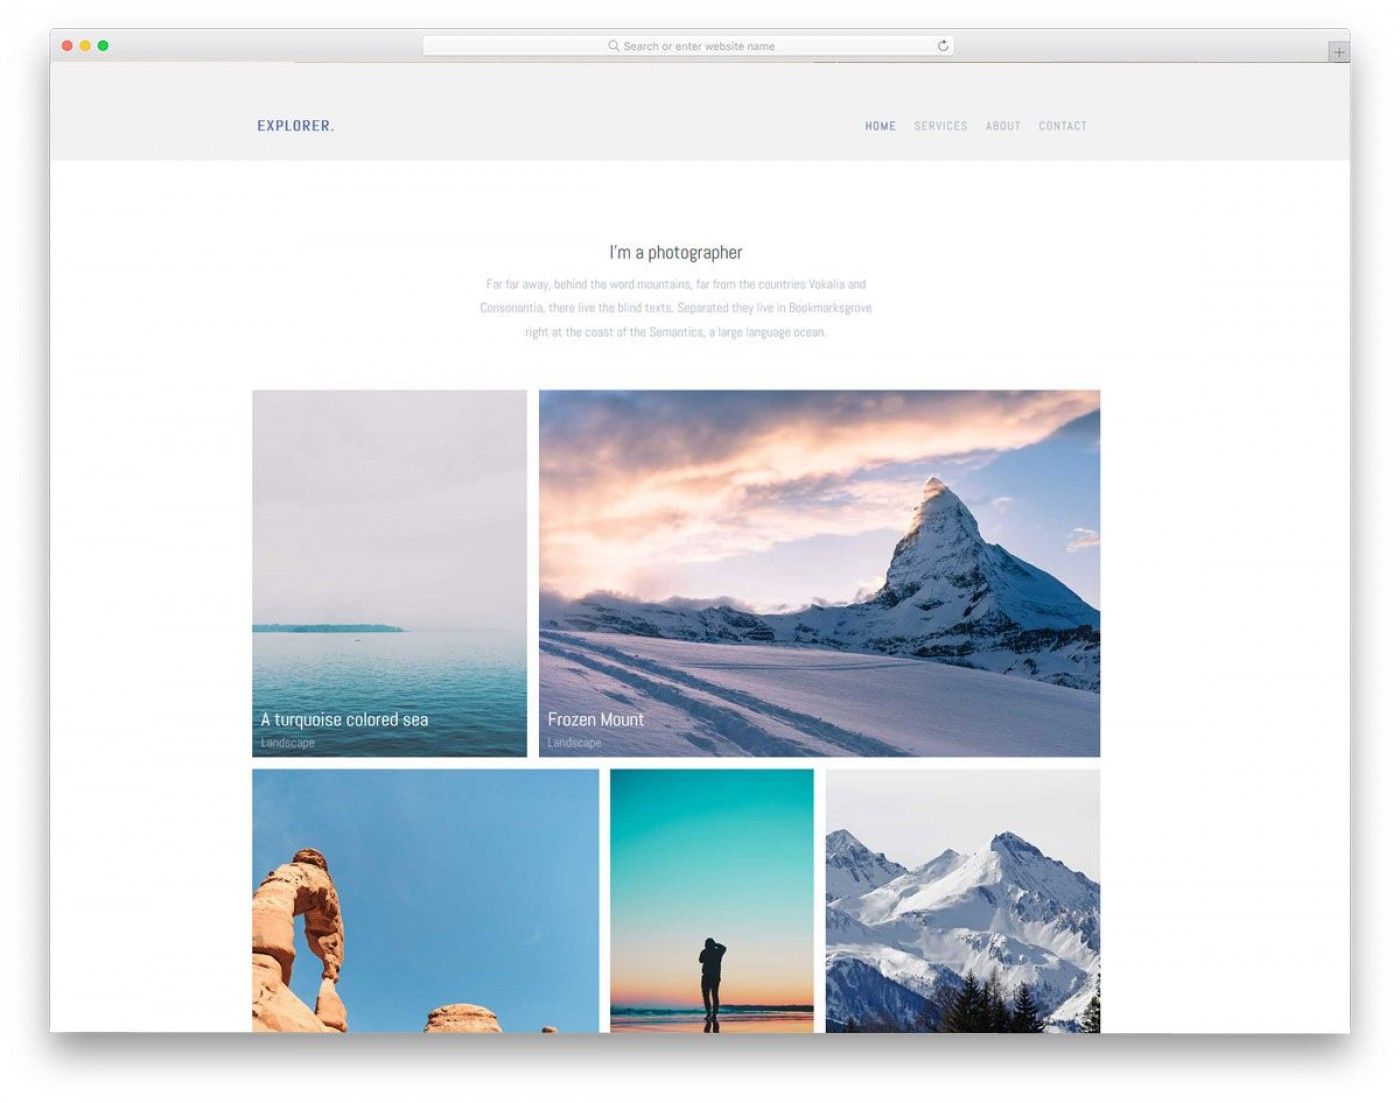 004 Wonderful Simple Web Page Template Photo  Html Website Free Download In Design Using And Cs1400